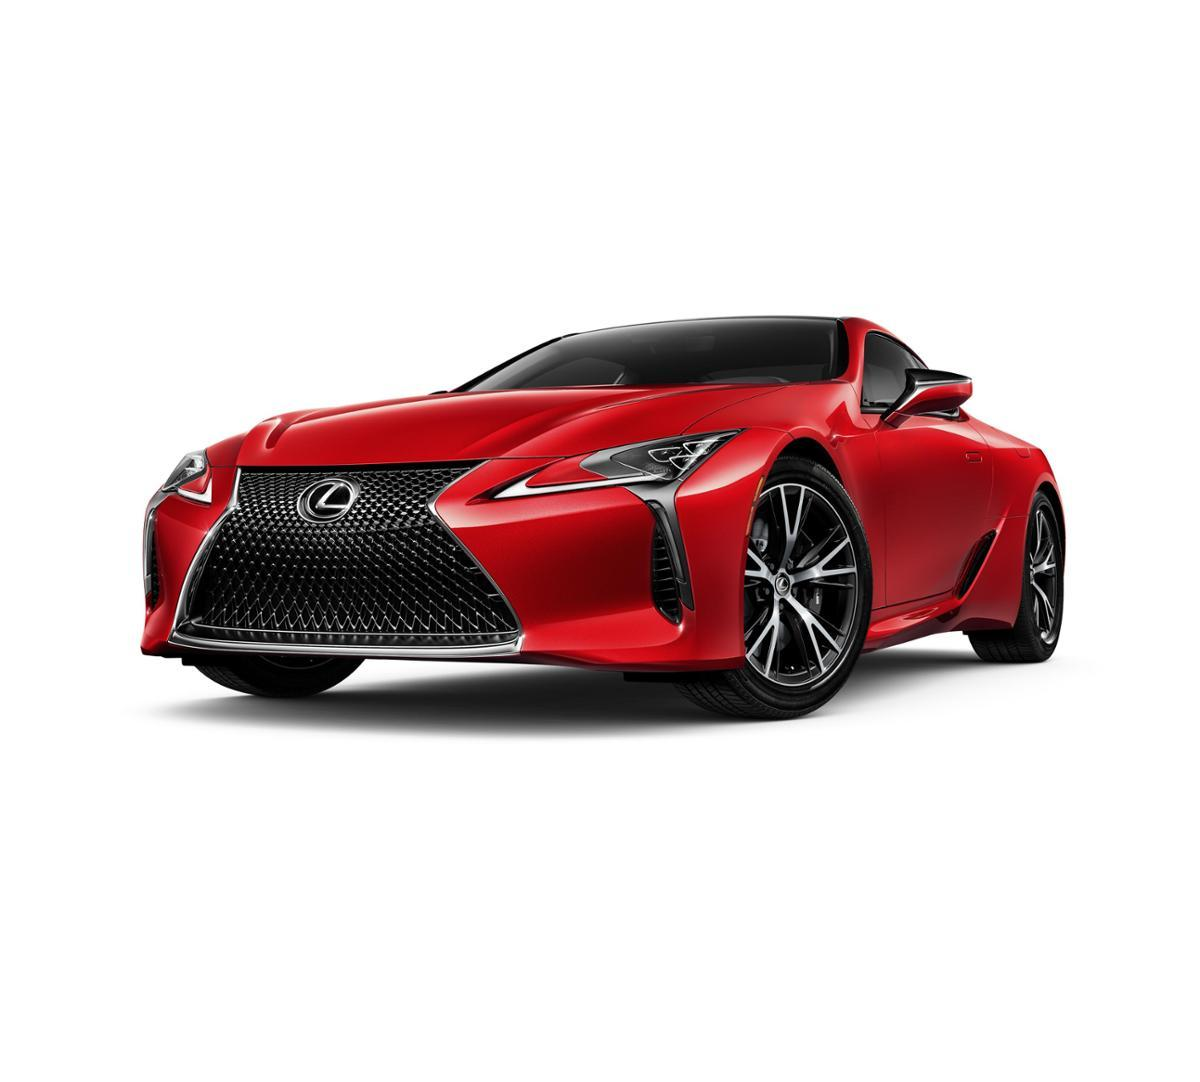 2019 Lexus LC 500 Vehicle Photo in Santa Monica, CA 90404